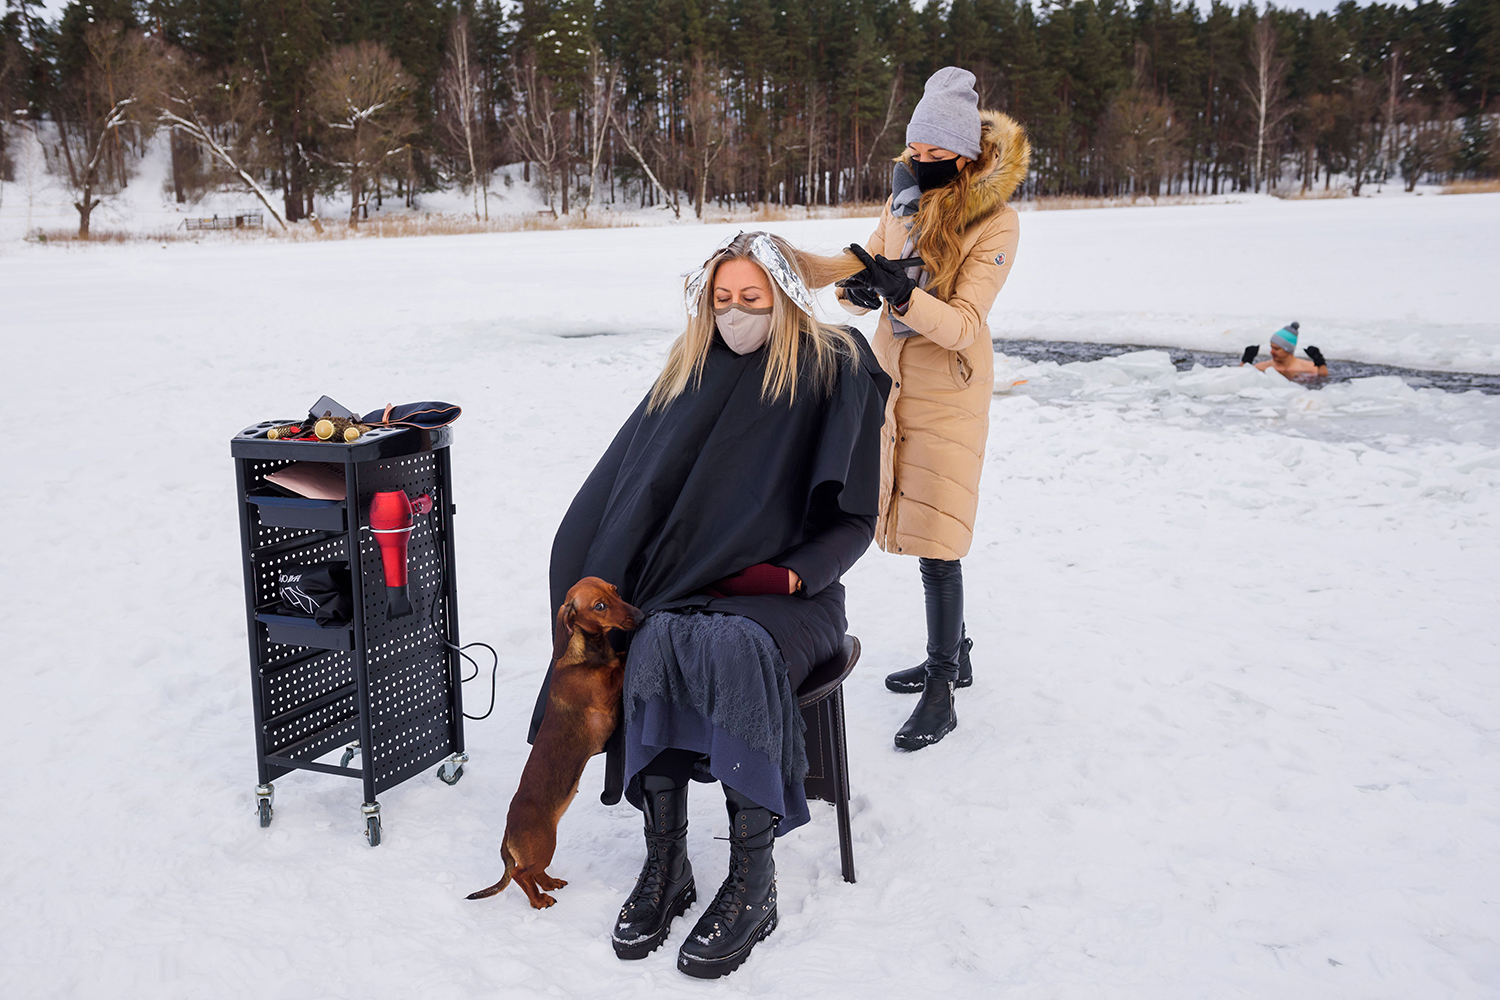 A hairdresser cuts a client's hair while a swimmer enjoys a dip in an ice hole on Lake Babelitis in Riga, Latvia, on Feb. 15. Hairdressers are not allowed to work indoors due to the pandemic. GINTS IVUSKANS/AFP via Getty Images